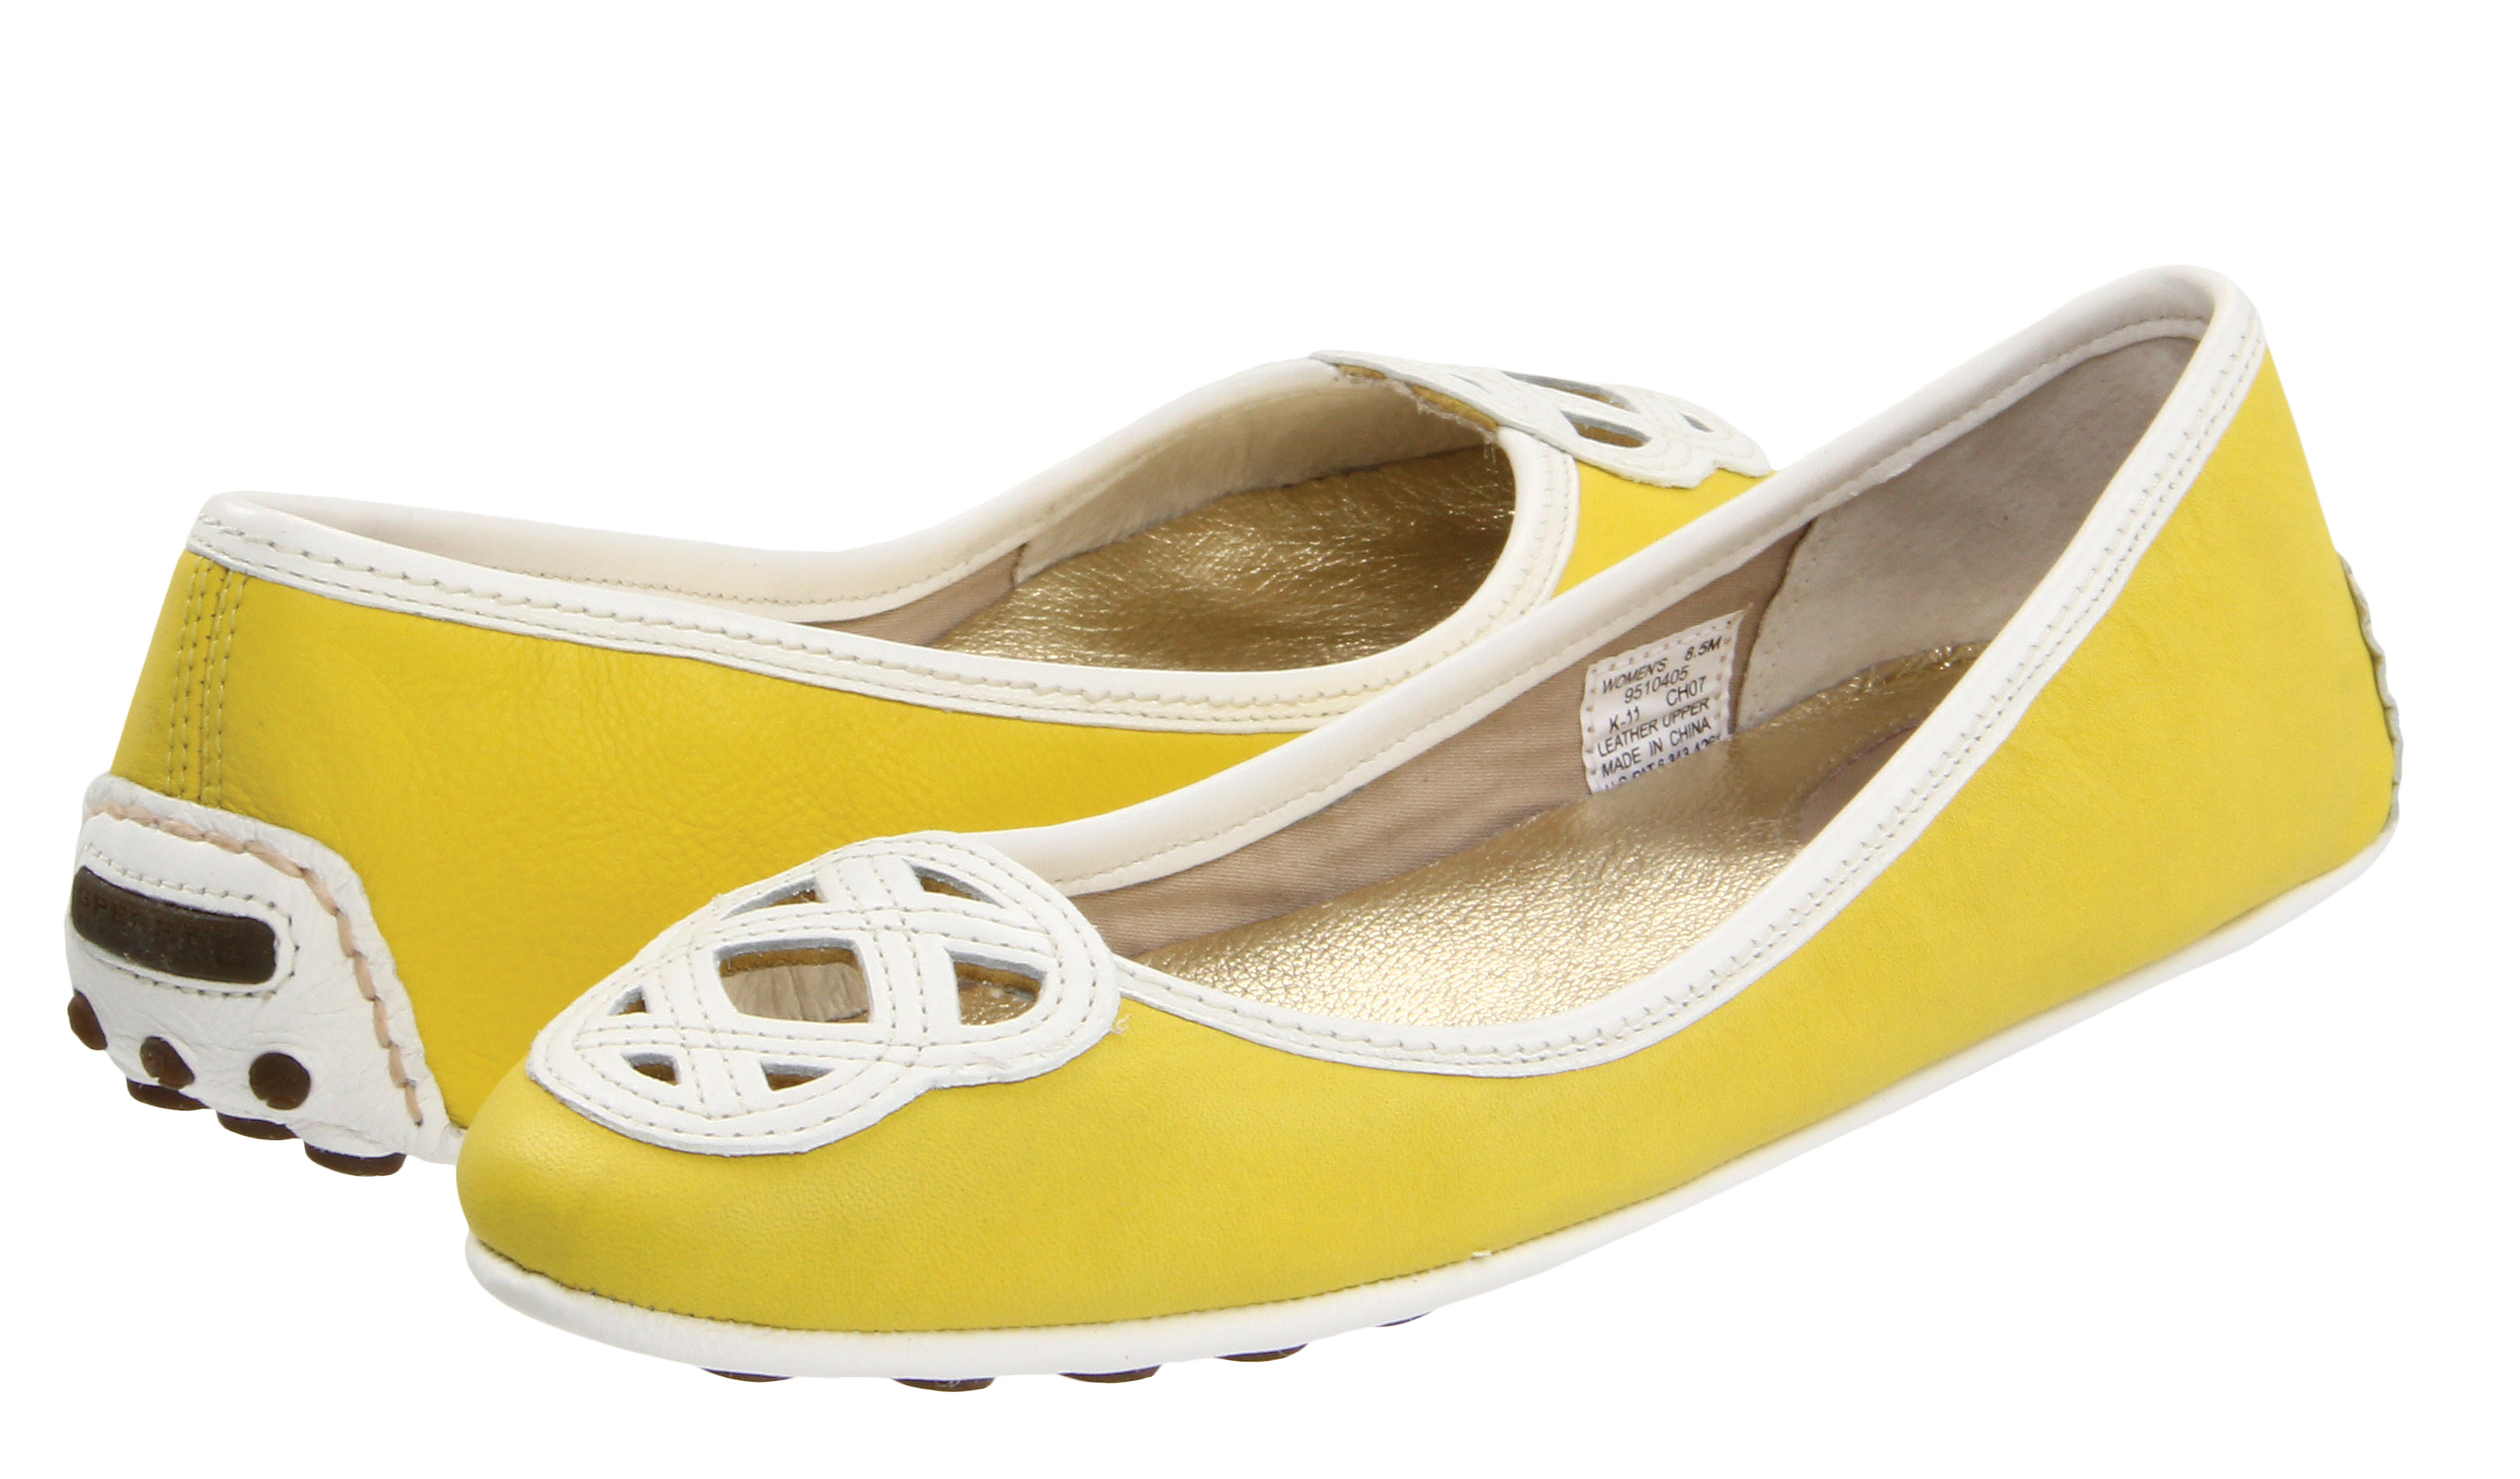 These fun flats are perfect for summer!